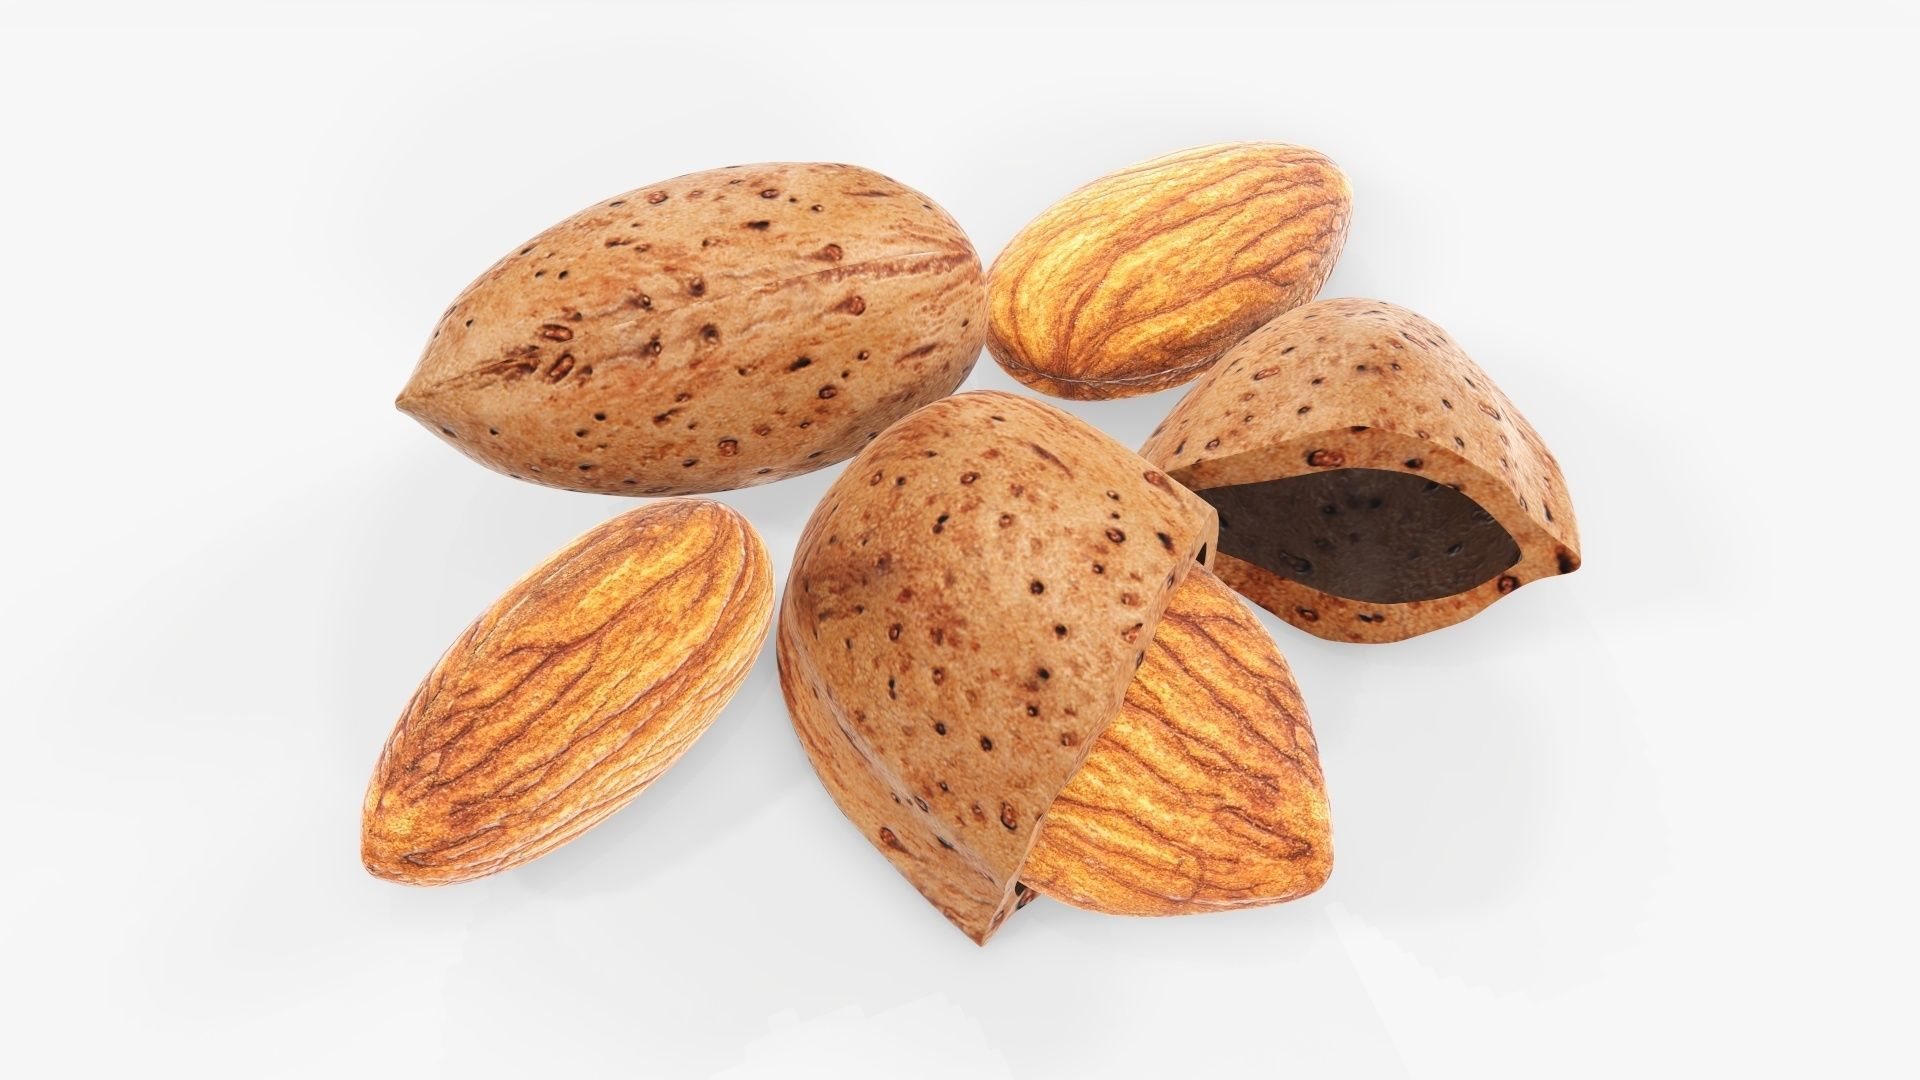 Nuts almond 03